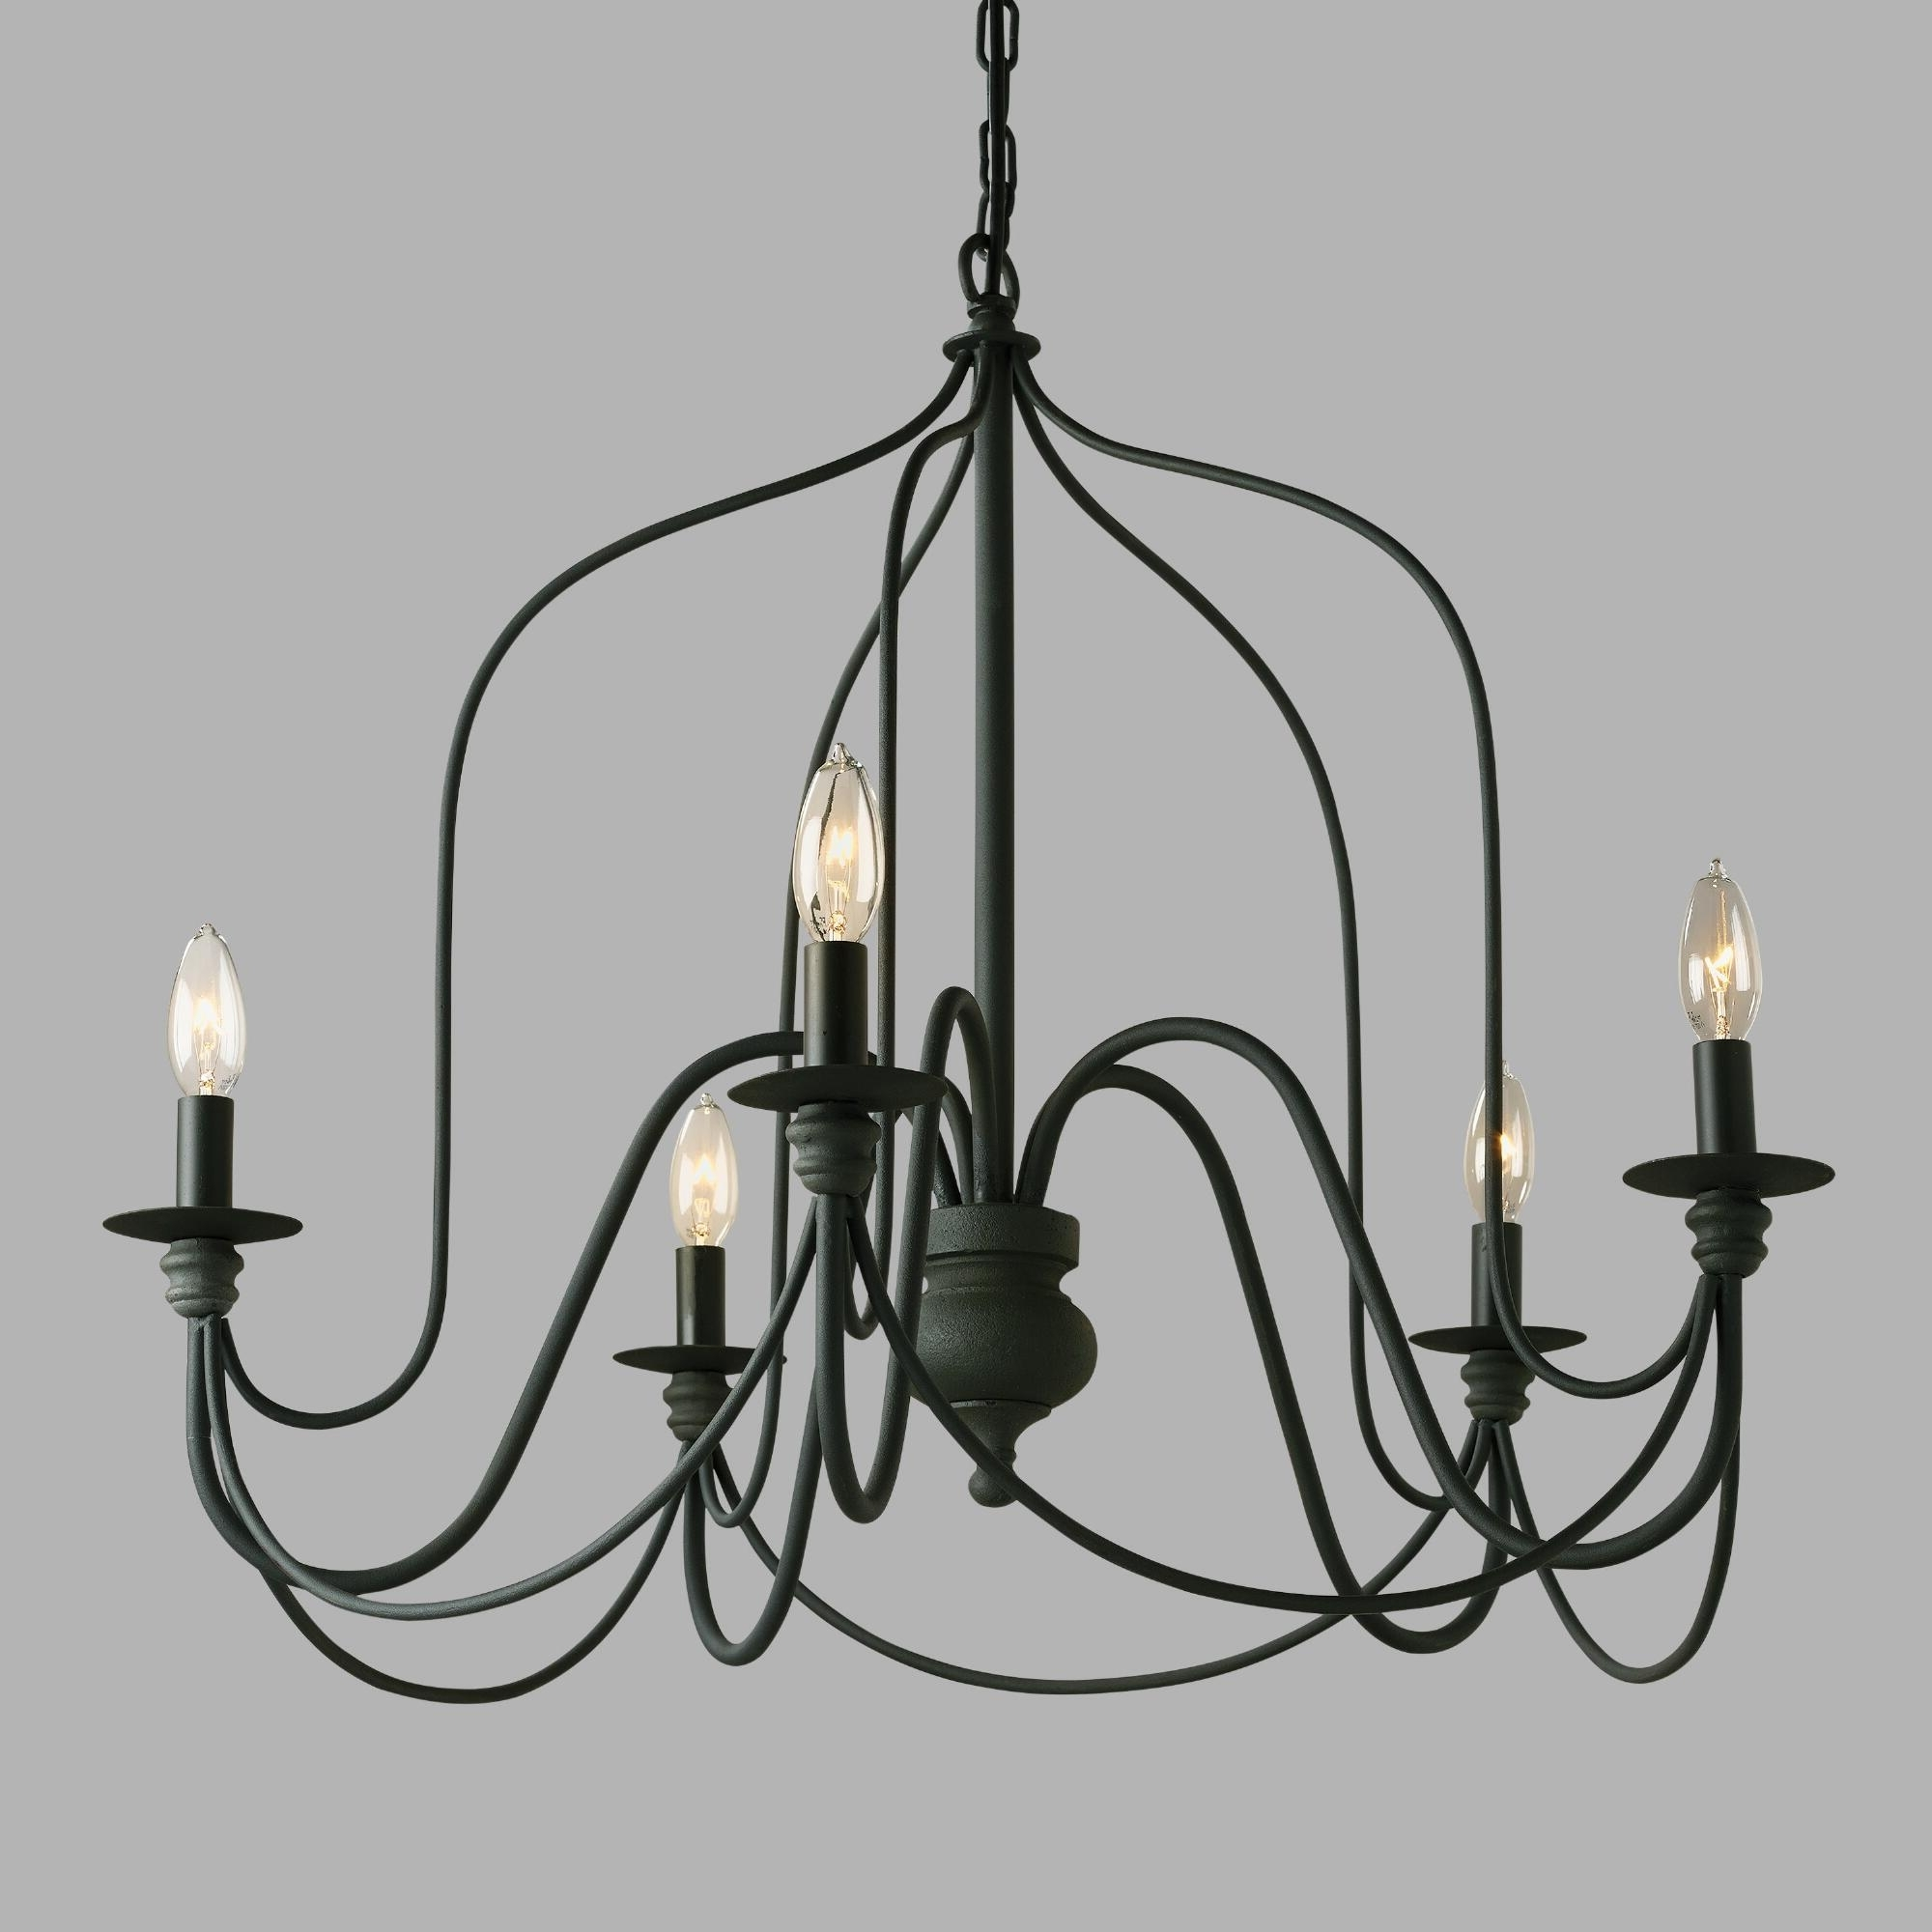 Chandeliers Design : Fabulous Candle Chandeliers Beautiful Excellent Pertaining To Trendy Hanging Candelabra Chandeliers (View 8 of 15)